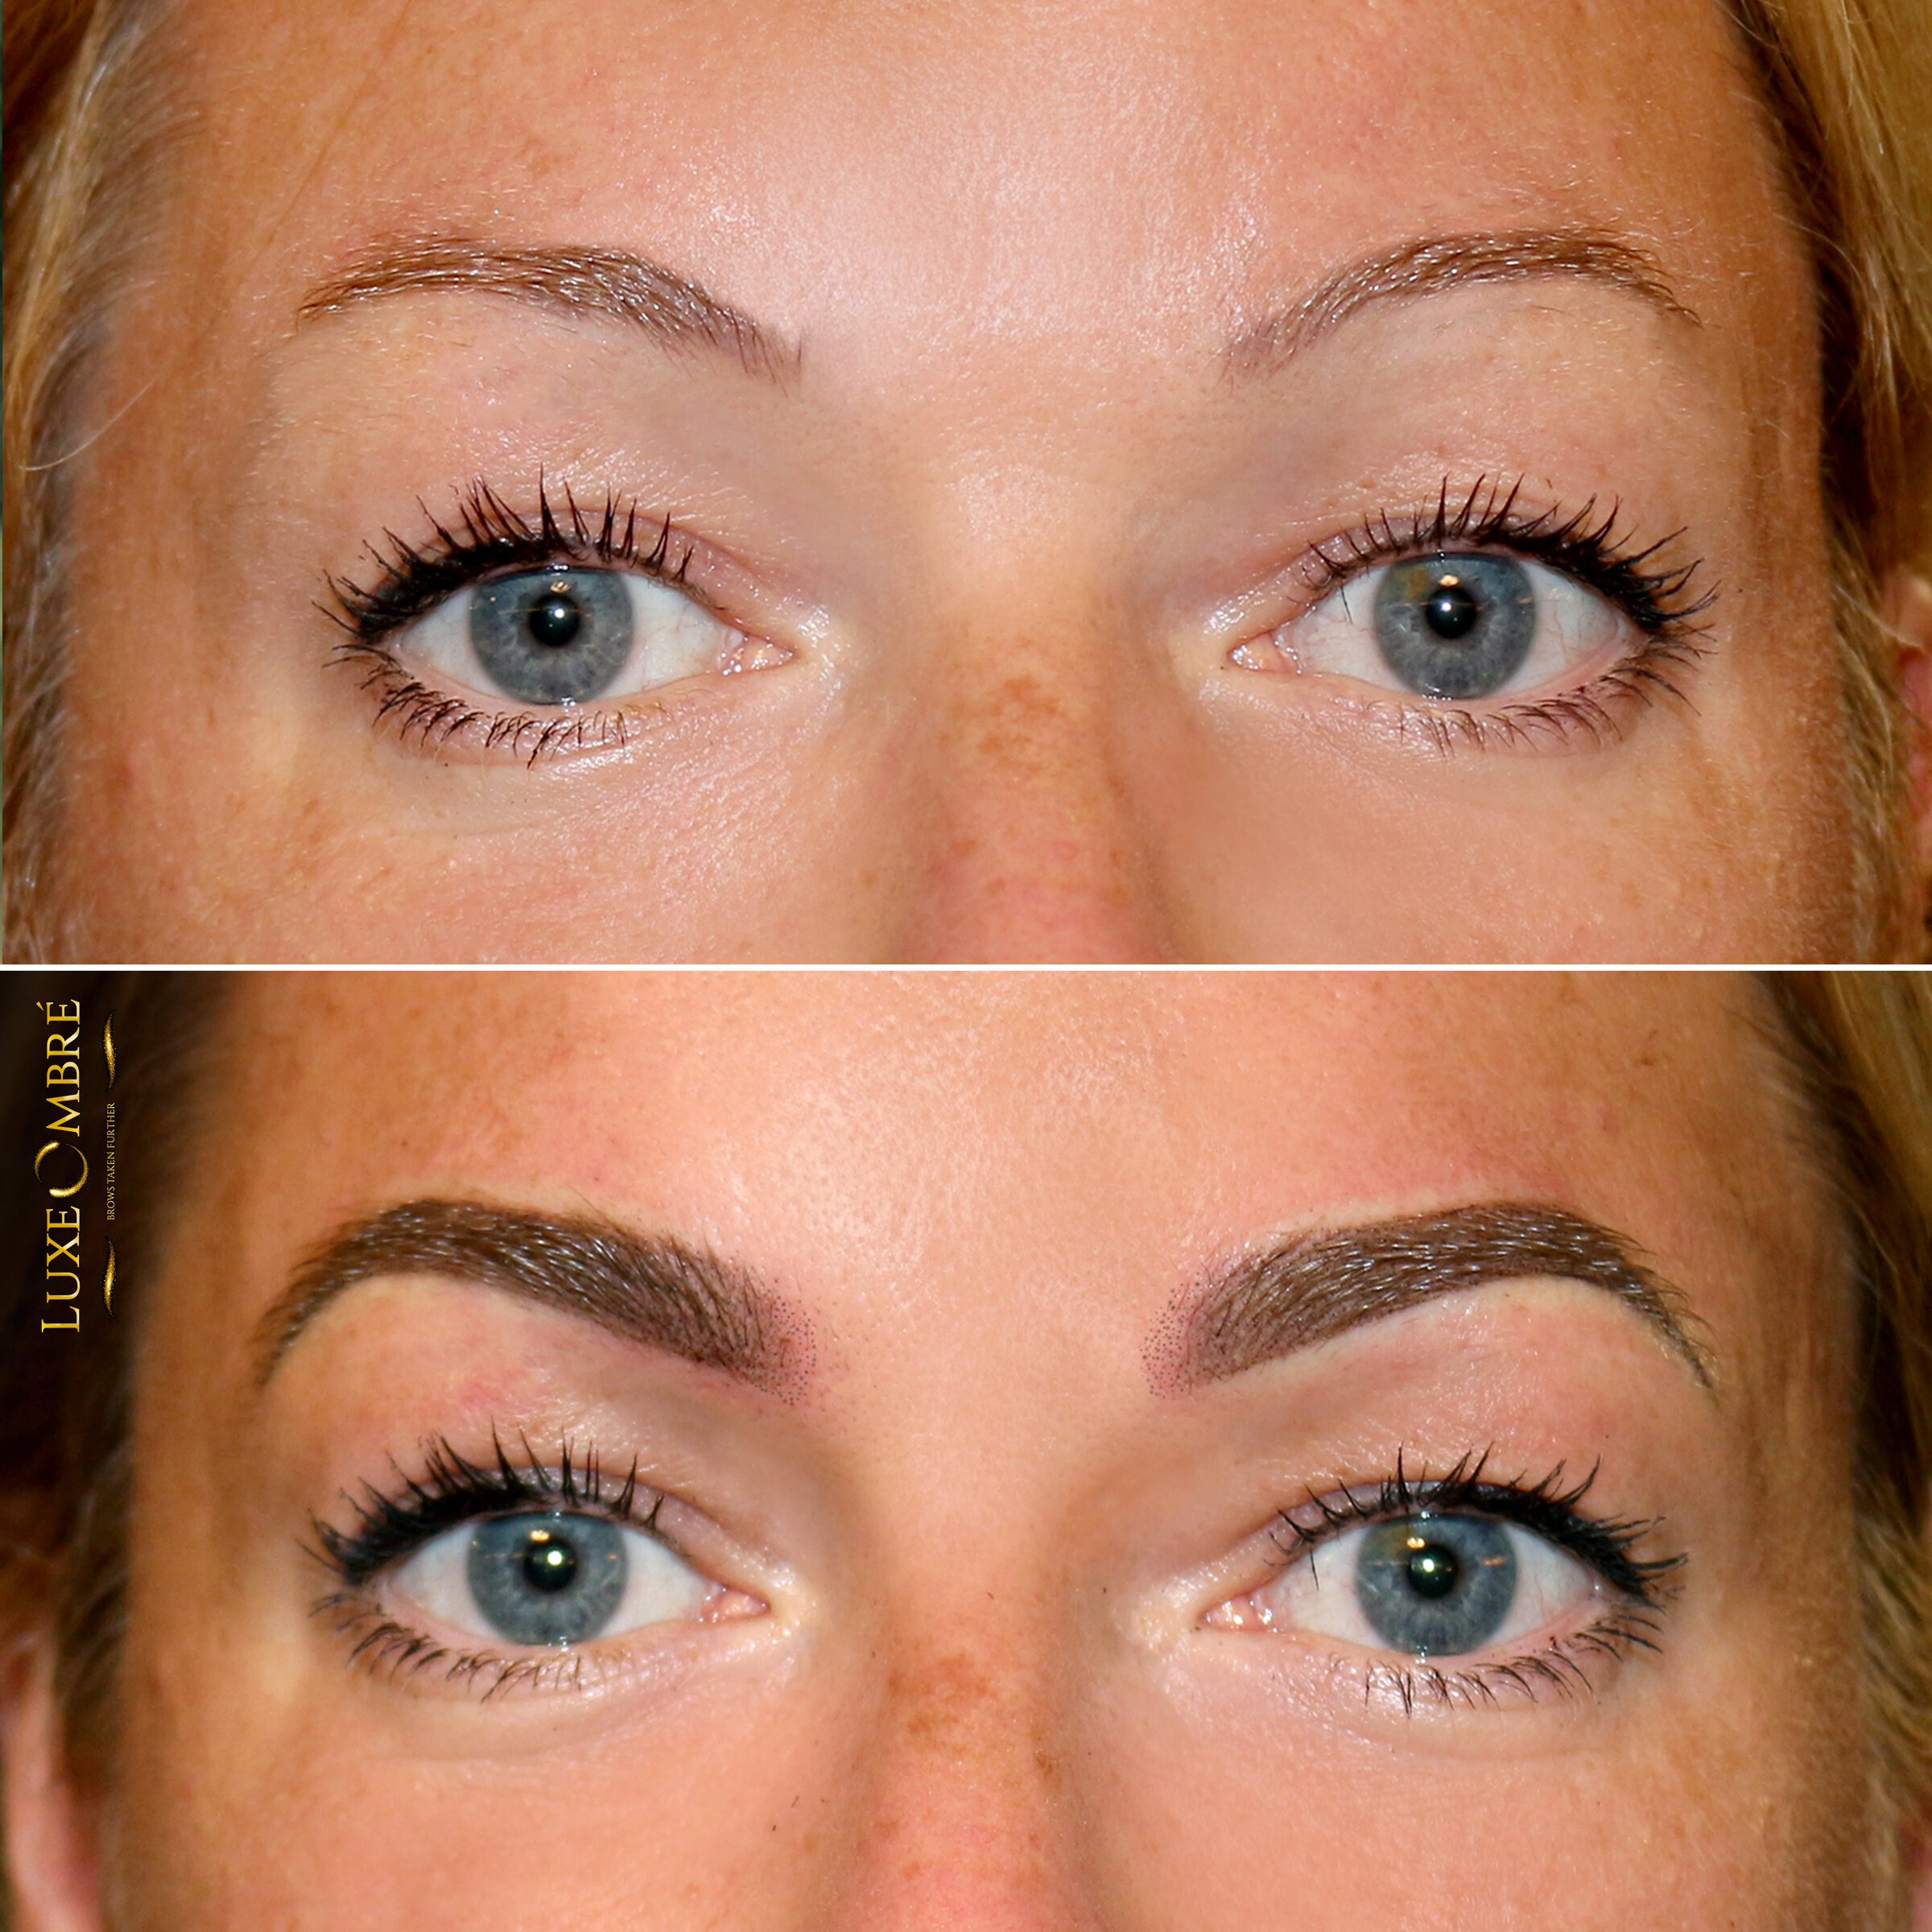 Little brows turned to natural and beautiful with LuxeOmbre.